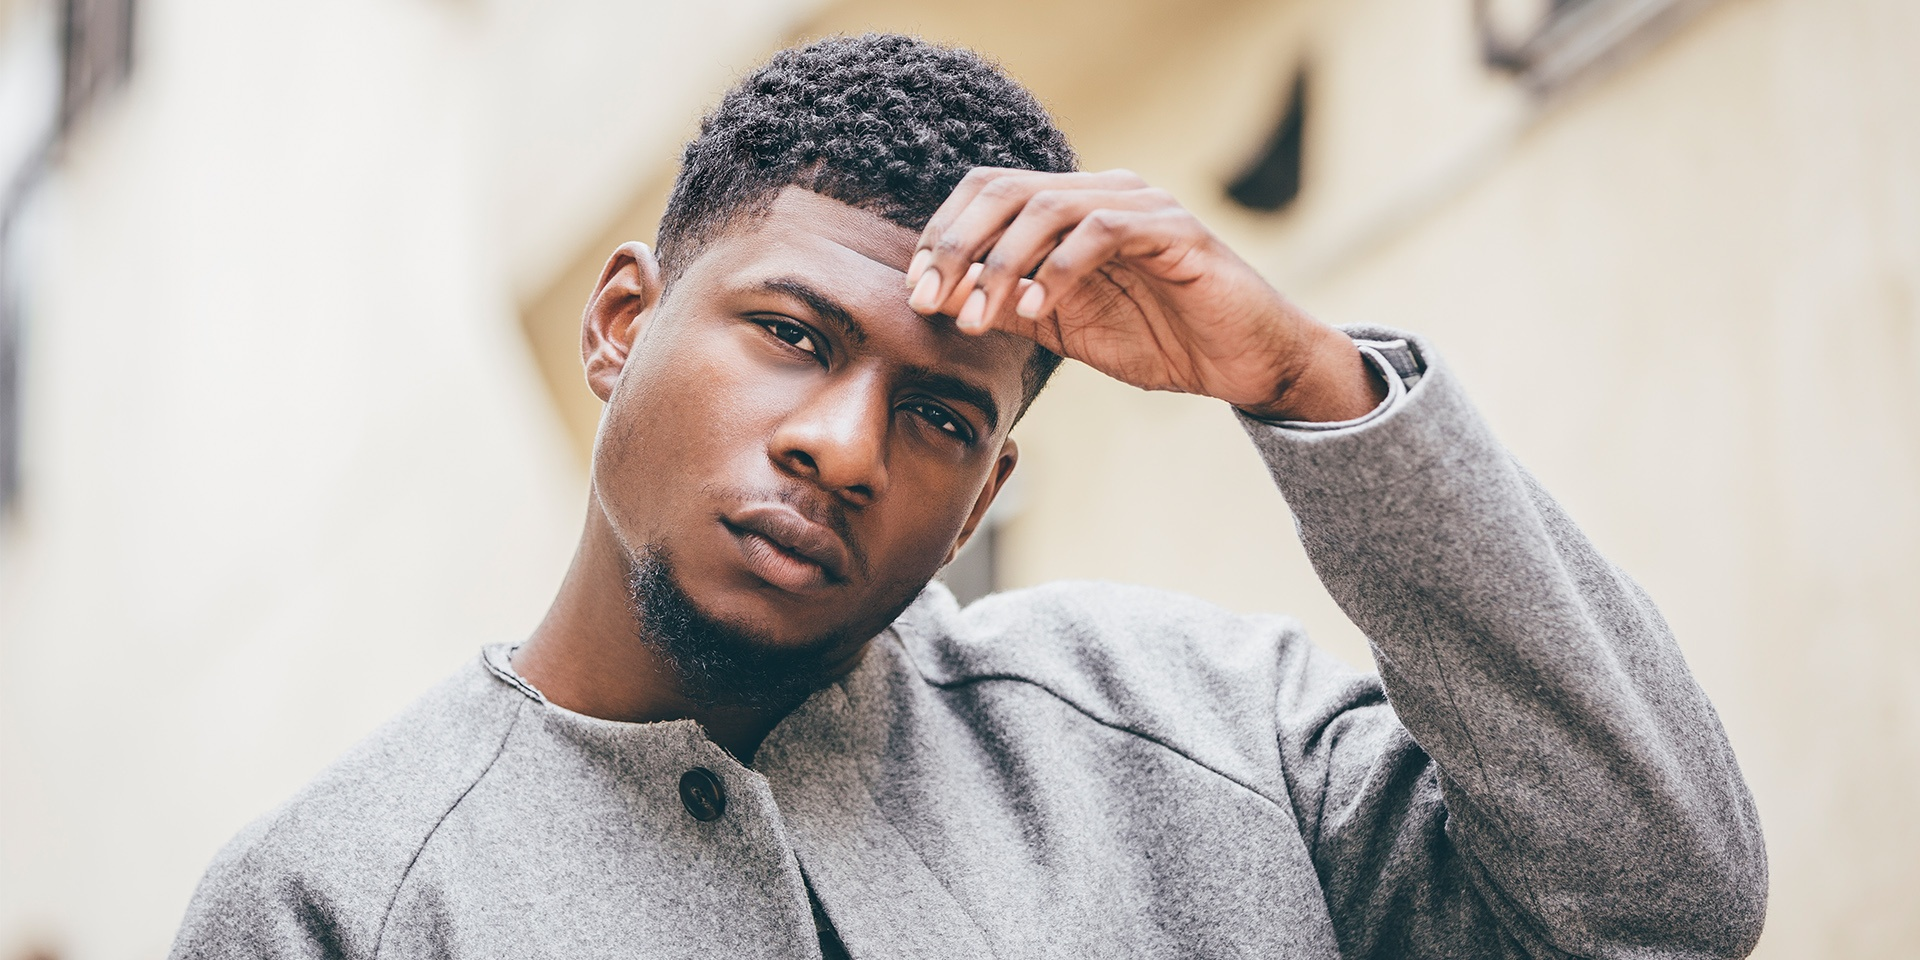 WATCH: Mick Jenkins discusses love, Trump, hip-hop and the awesomeness of Chicago